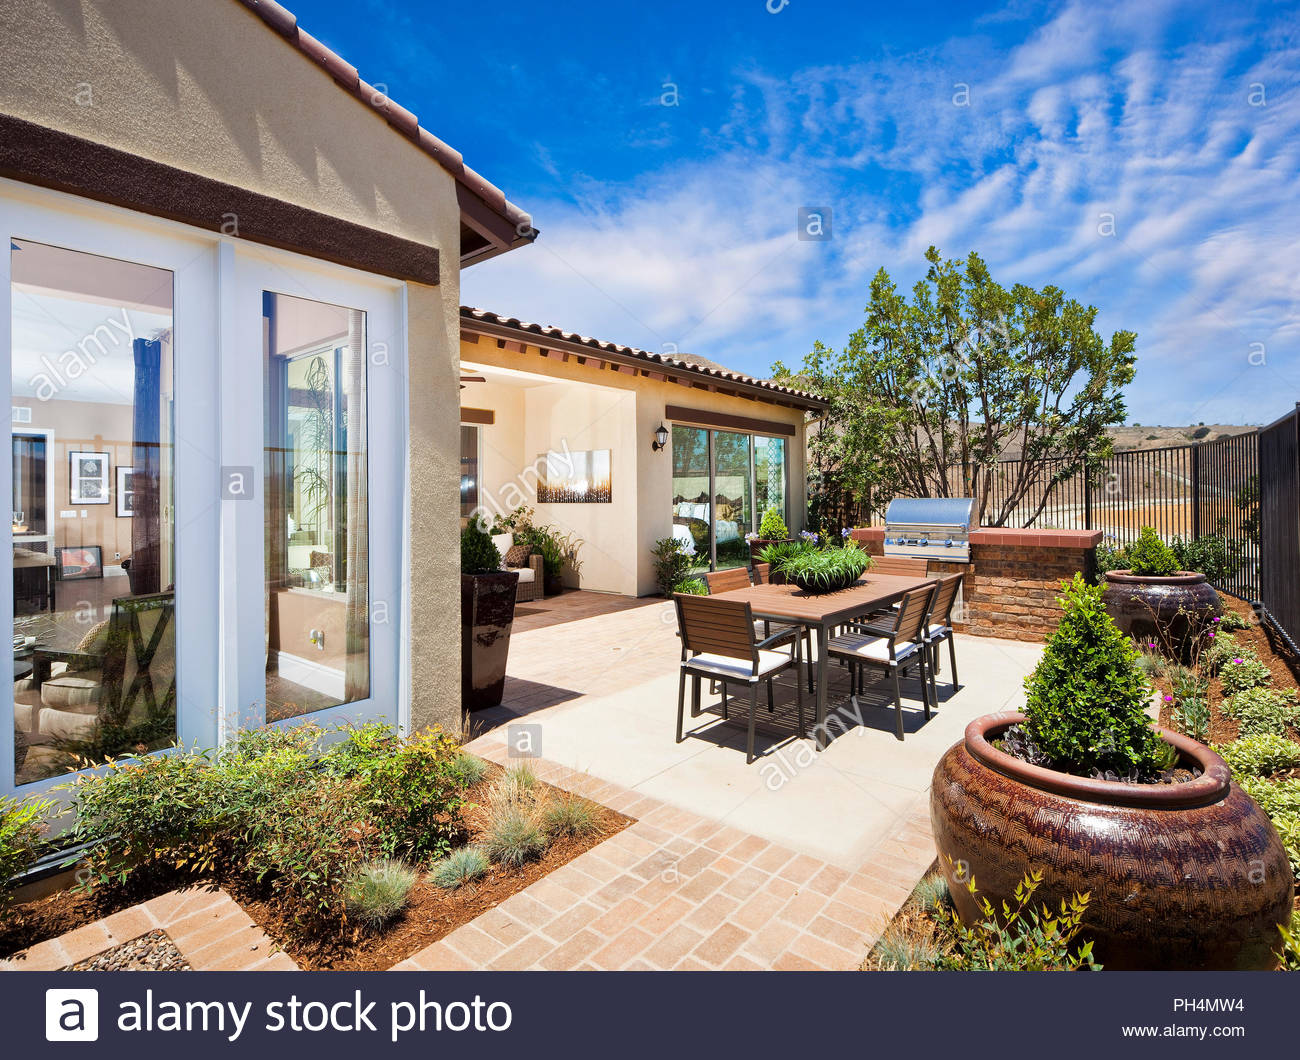 Patio in garden - Stock Image